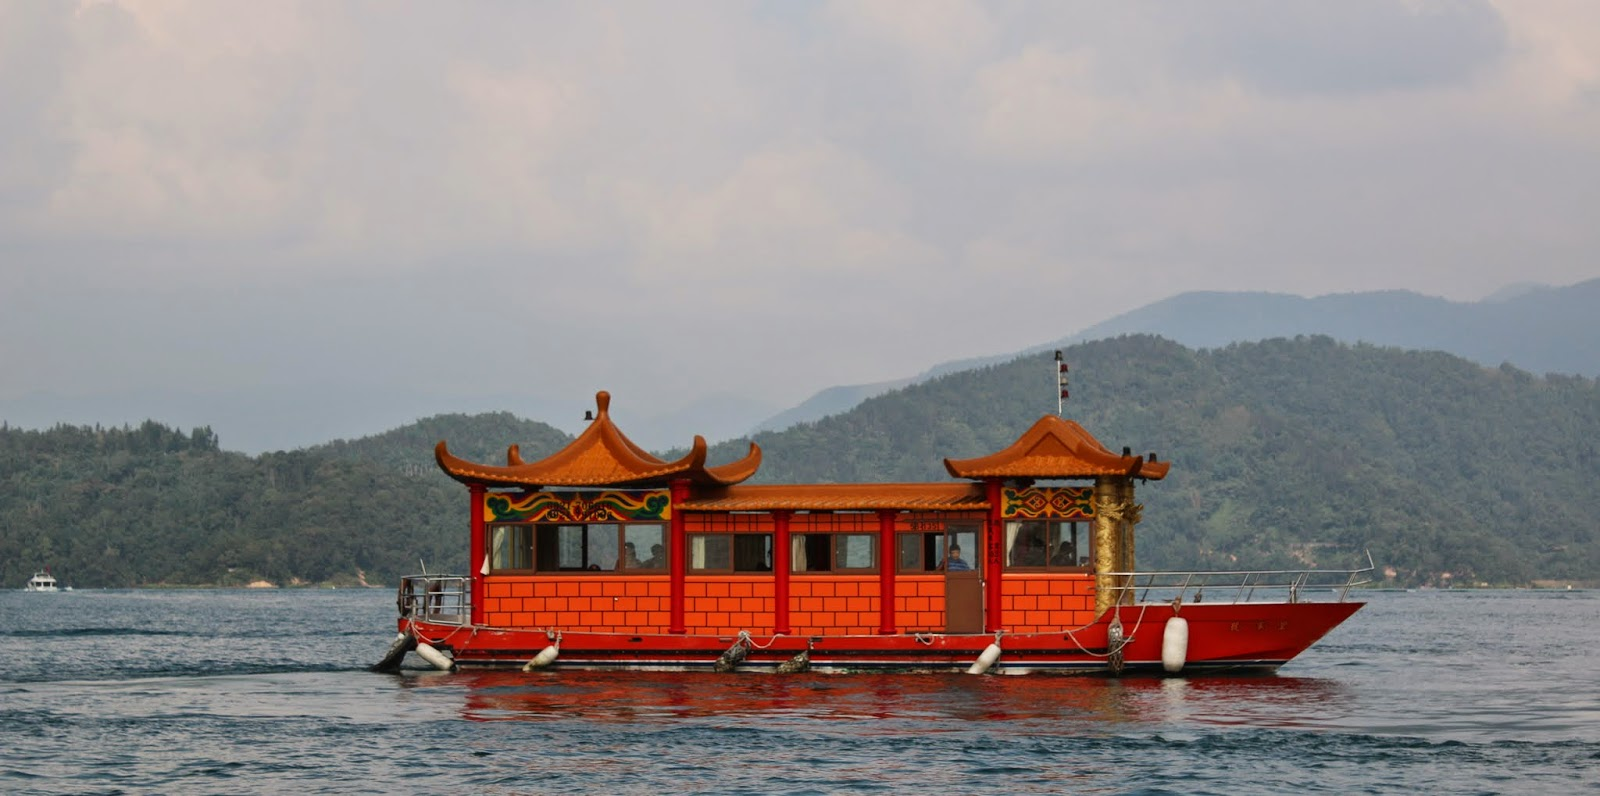 A beautiful Chinese Junk Boat can be seen along Sun Moon Lake in Taiwan